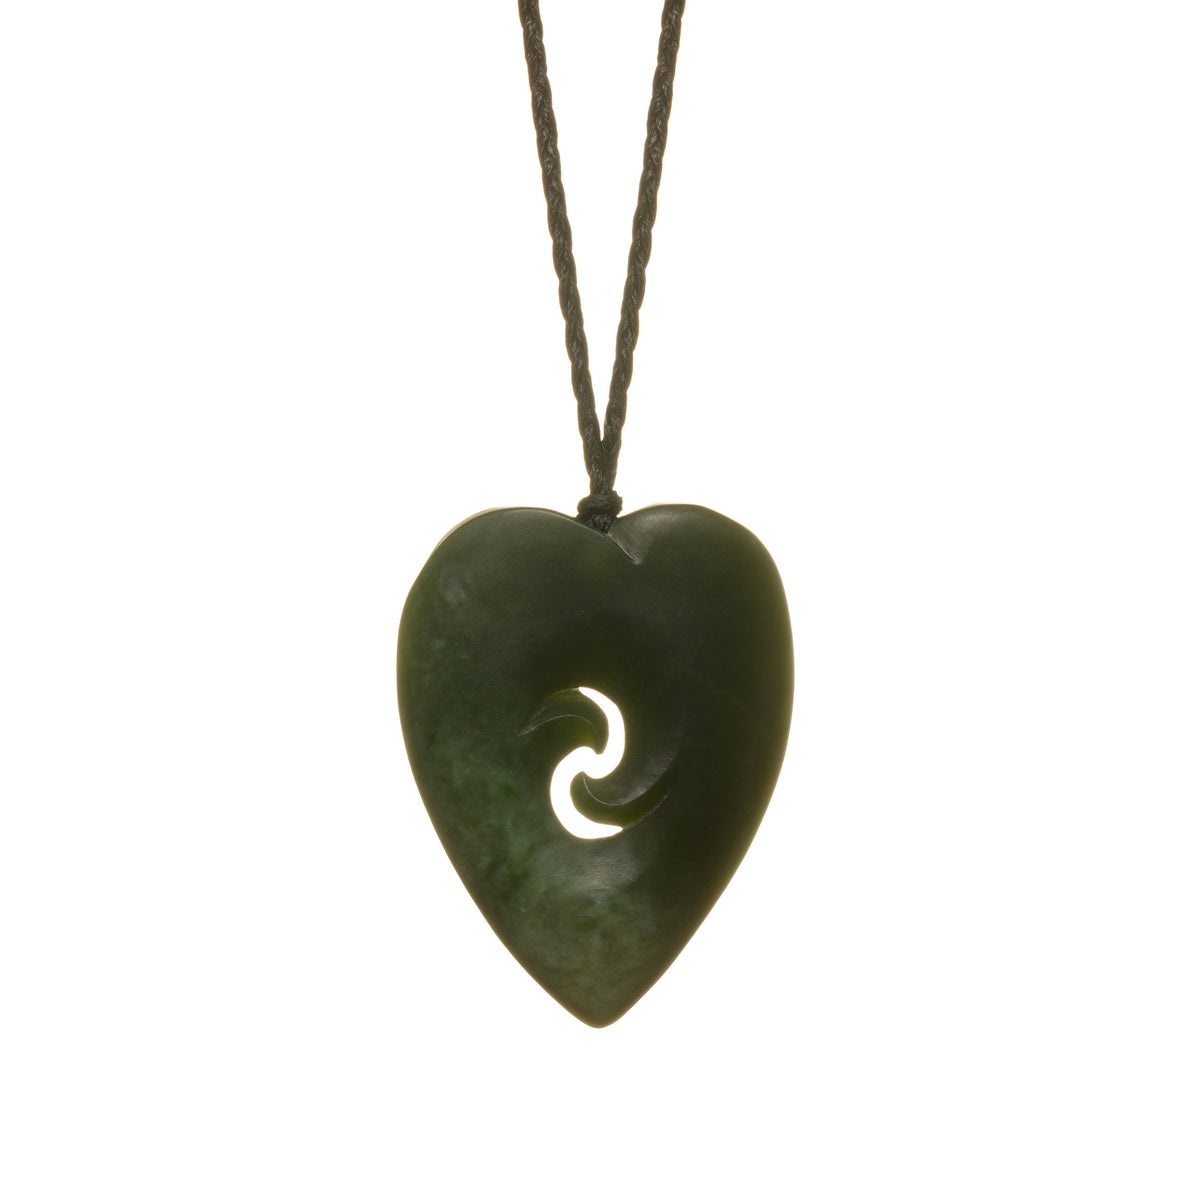 45mm x 35mm / New Zealand Pounamu